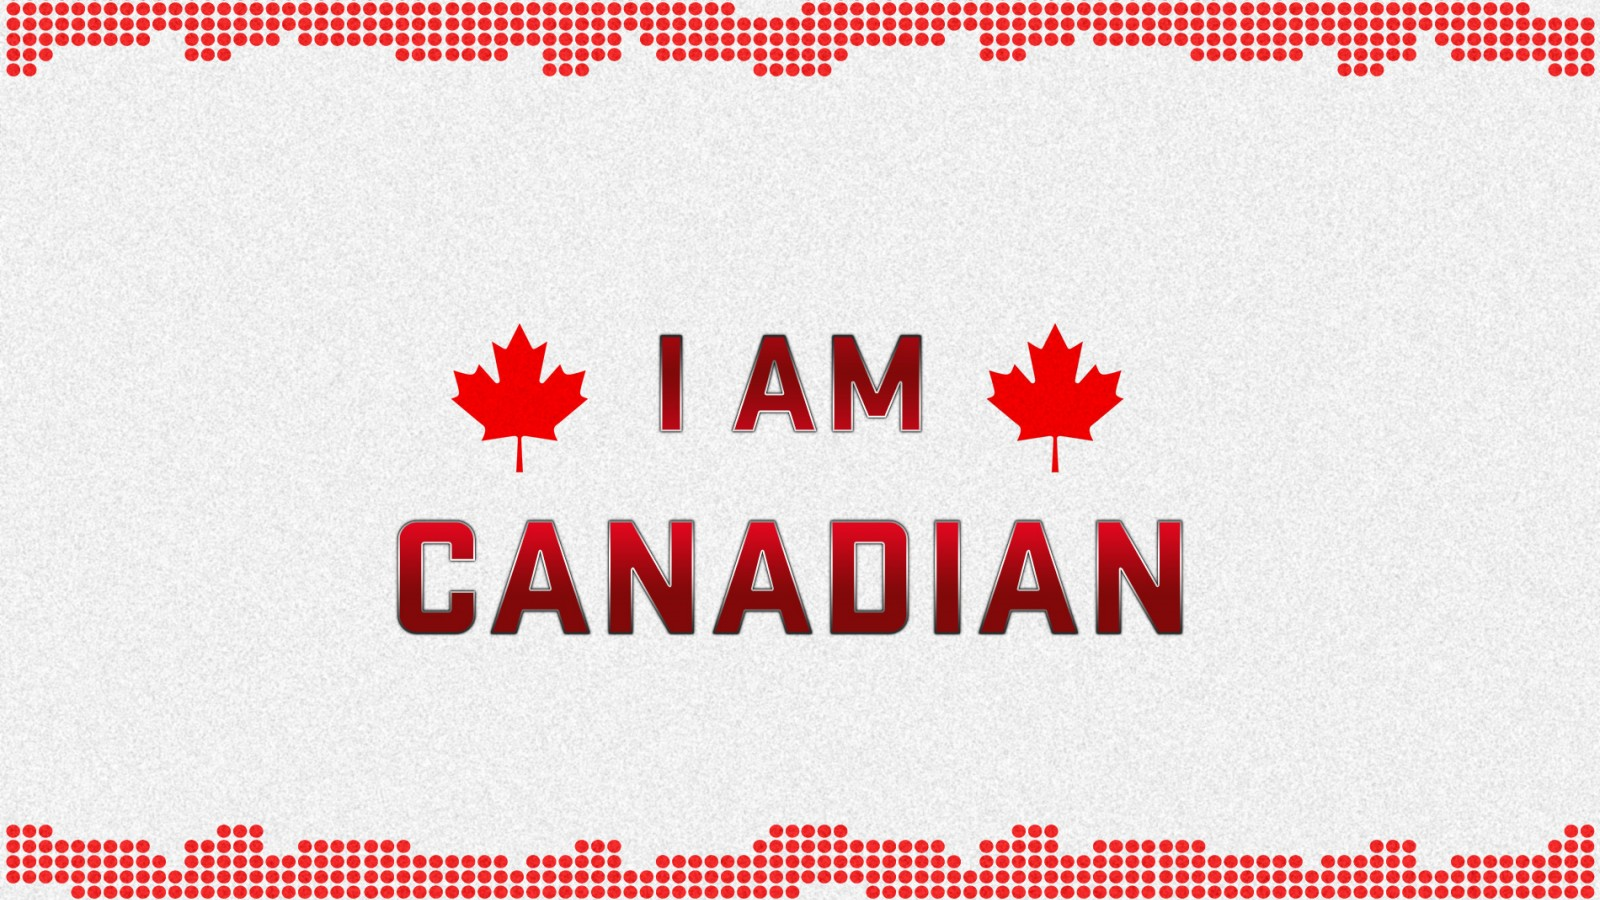 I am Canadian Wallpapers